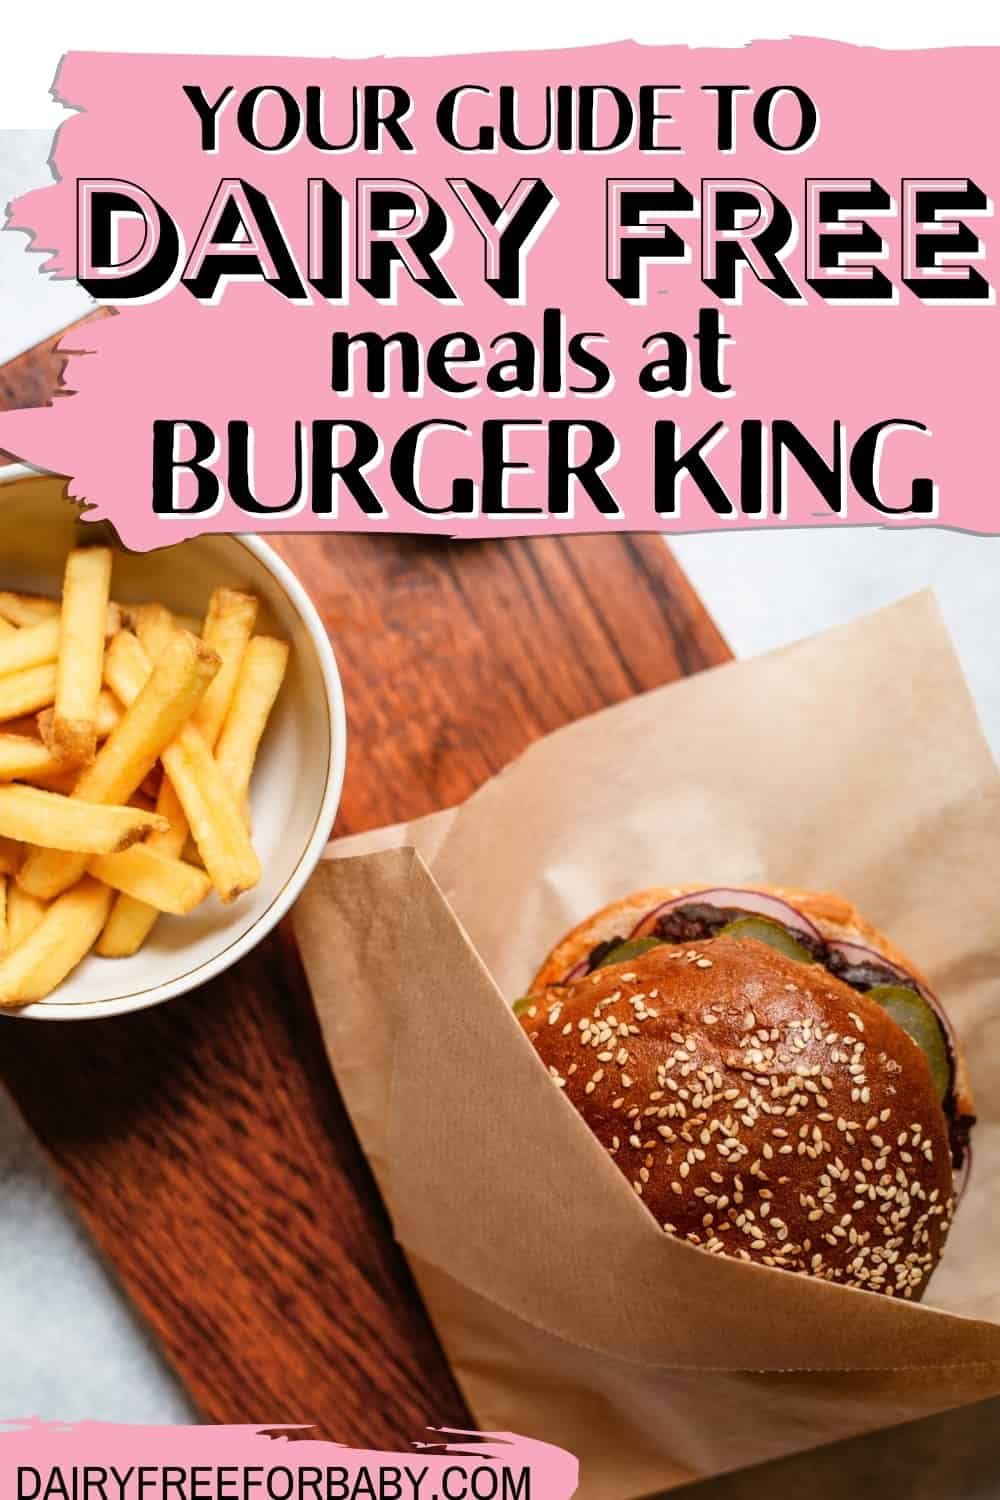 """A fast food burger and fries, with a text overlay that says """"Your guide to dairy free meals at Burger King""""."""